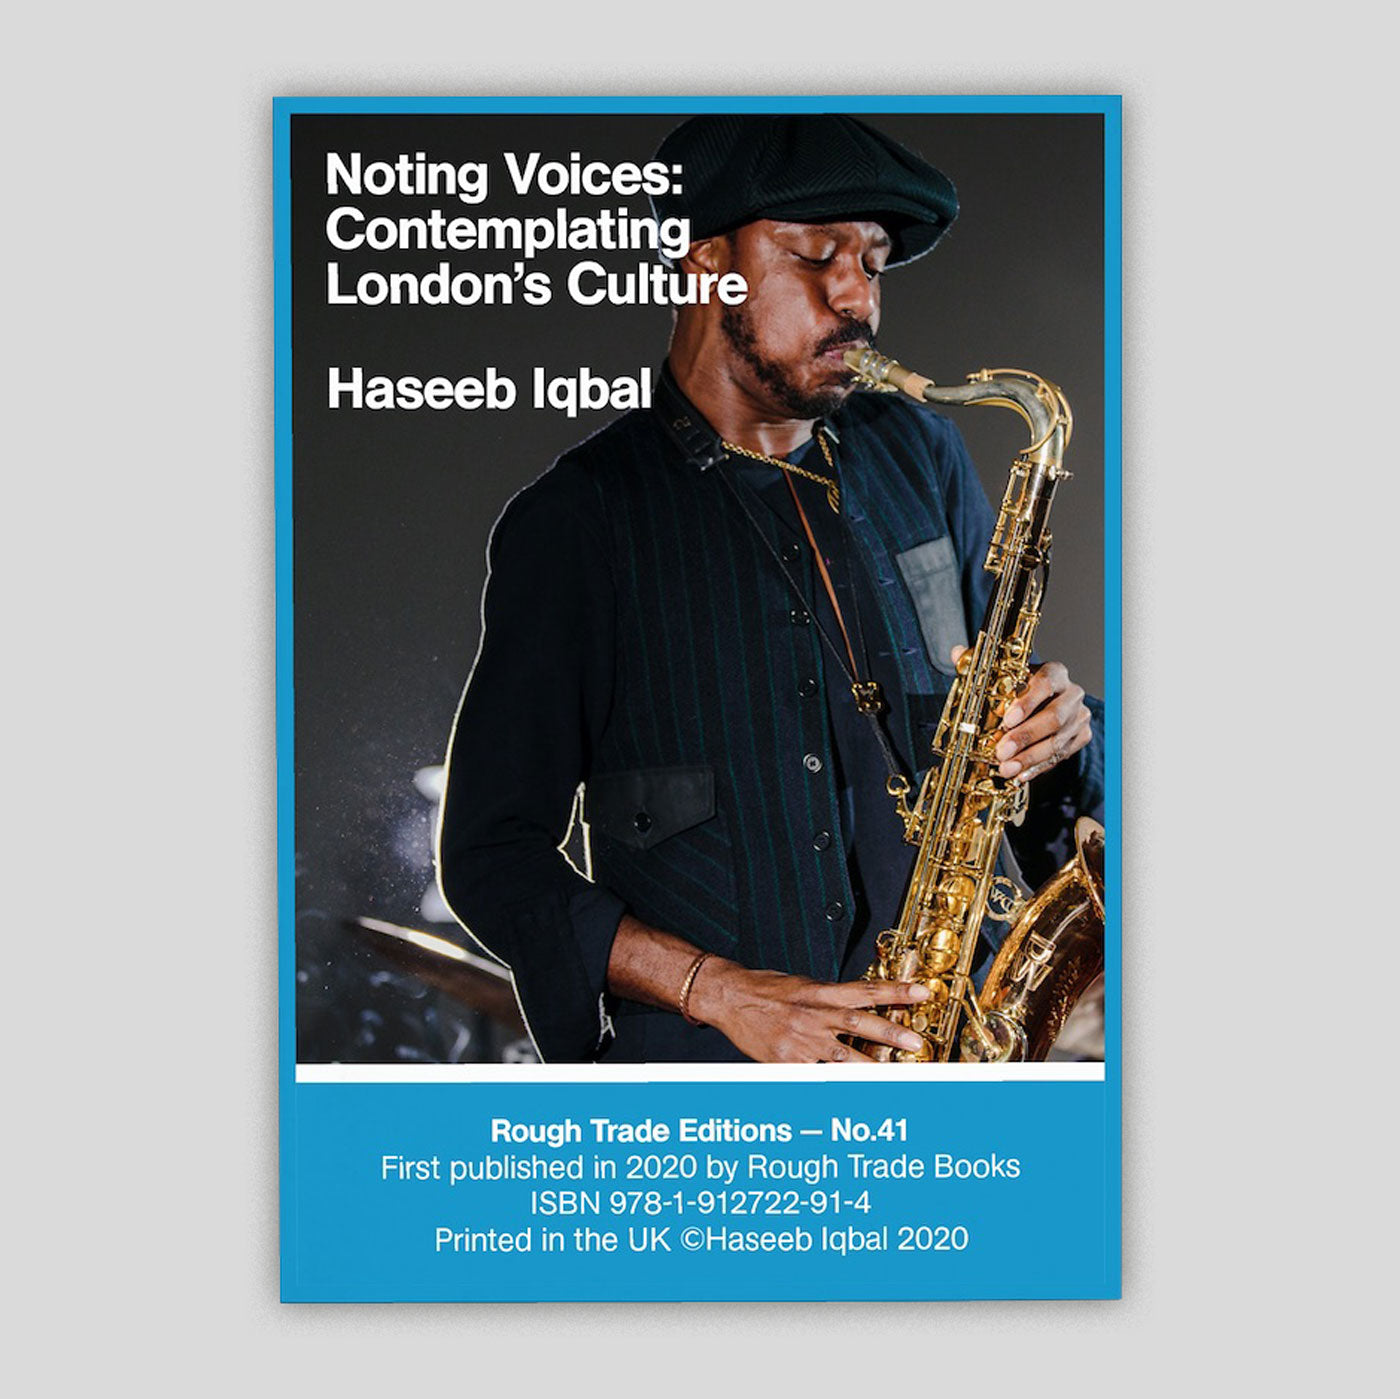 Noting Voices: Contemplating London's Culture | Haseeb Iqbal | Colours May Vary